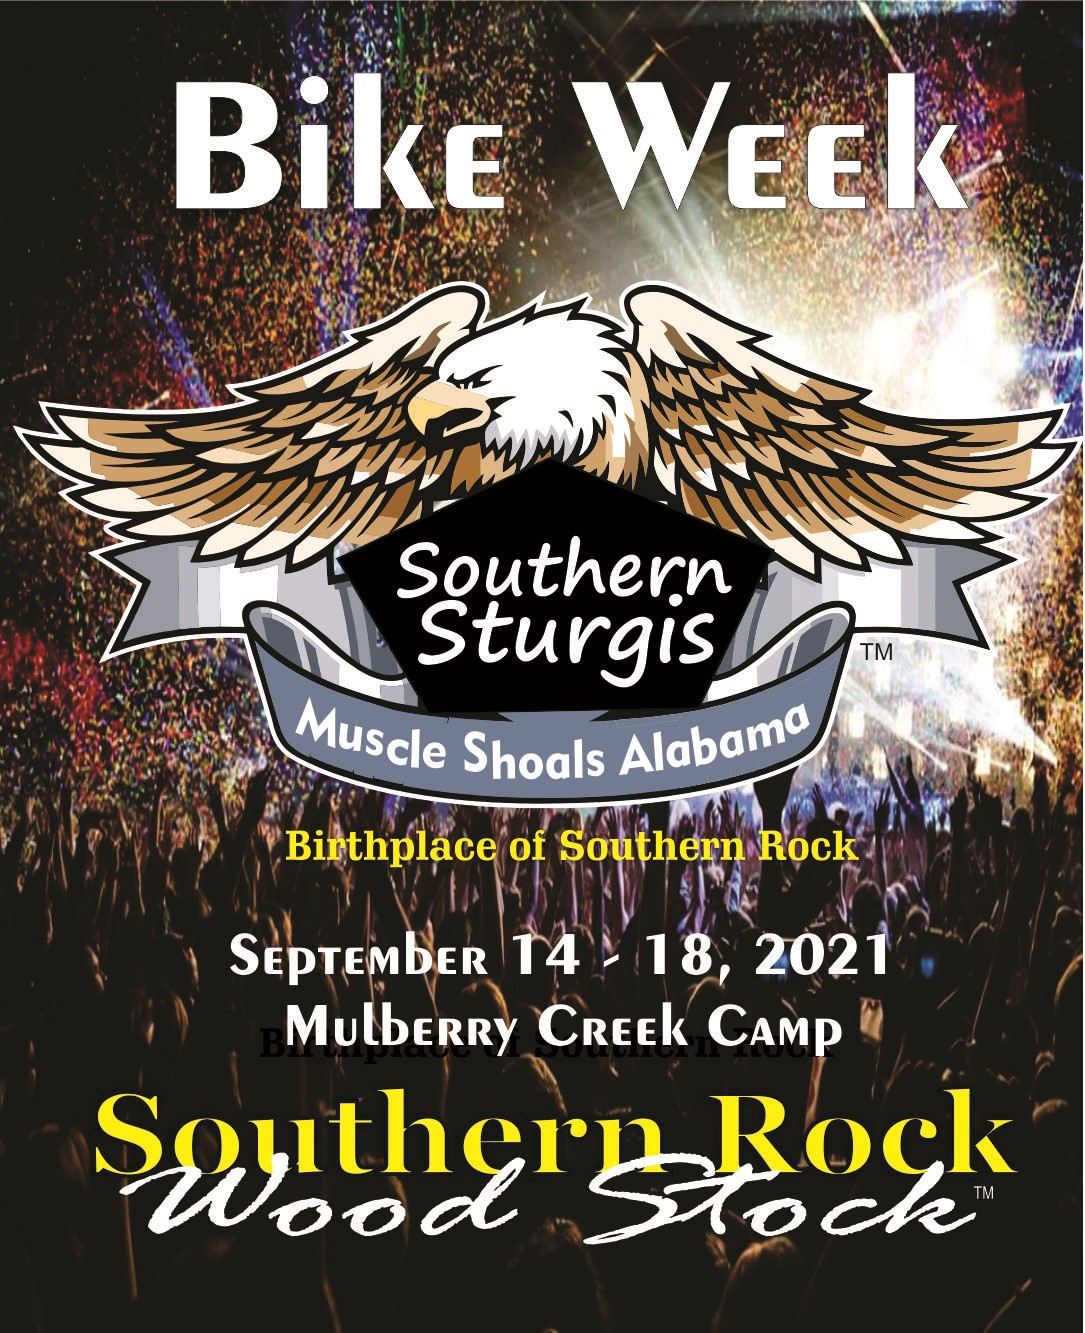 Southern Sturgis Southern Rock Wood Stock on sep. 17, 13:00@Mulberry Creek Camp - Buy tickets and Get information on www.southernrockwoodstock.com